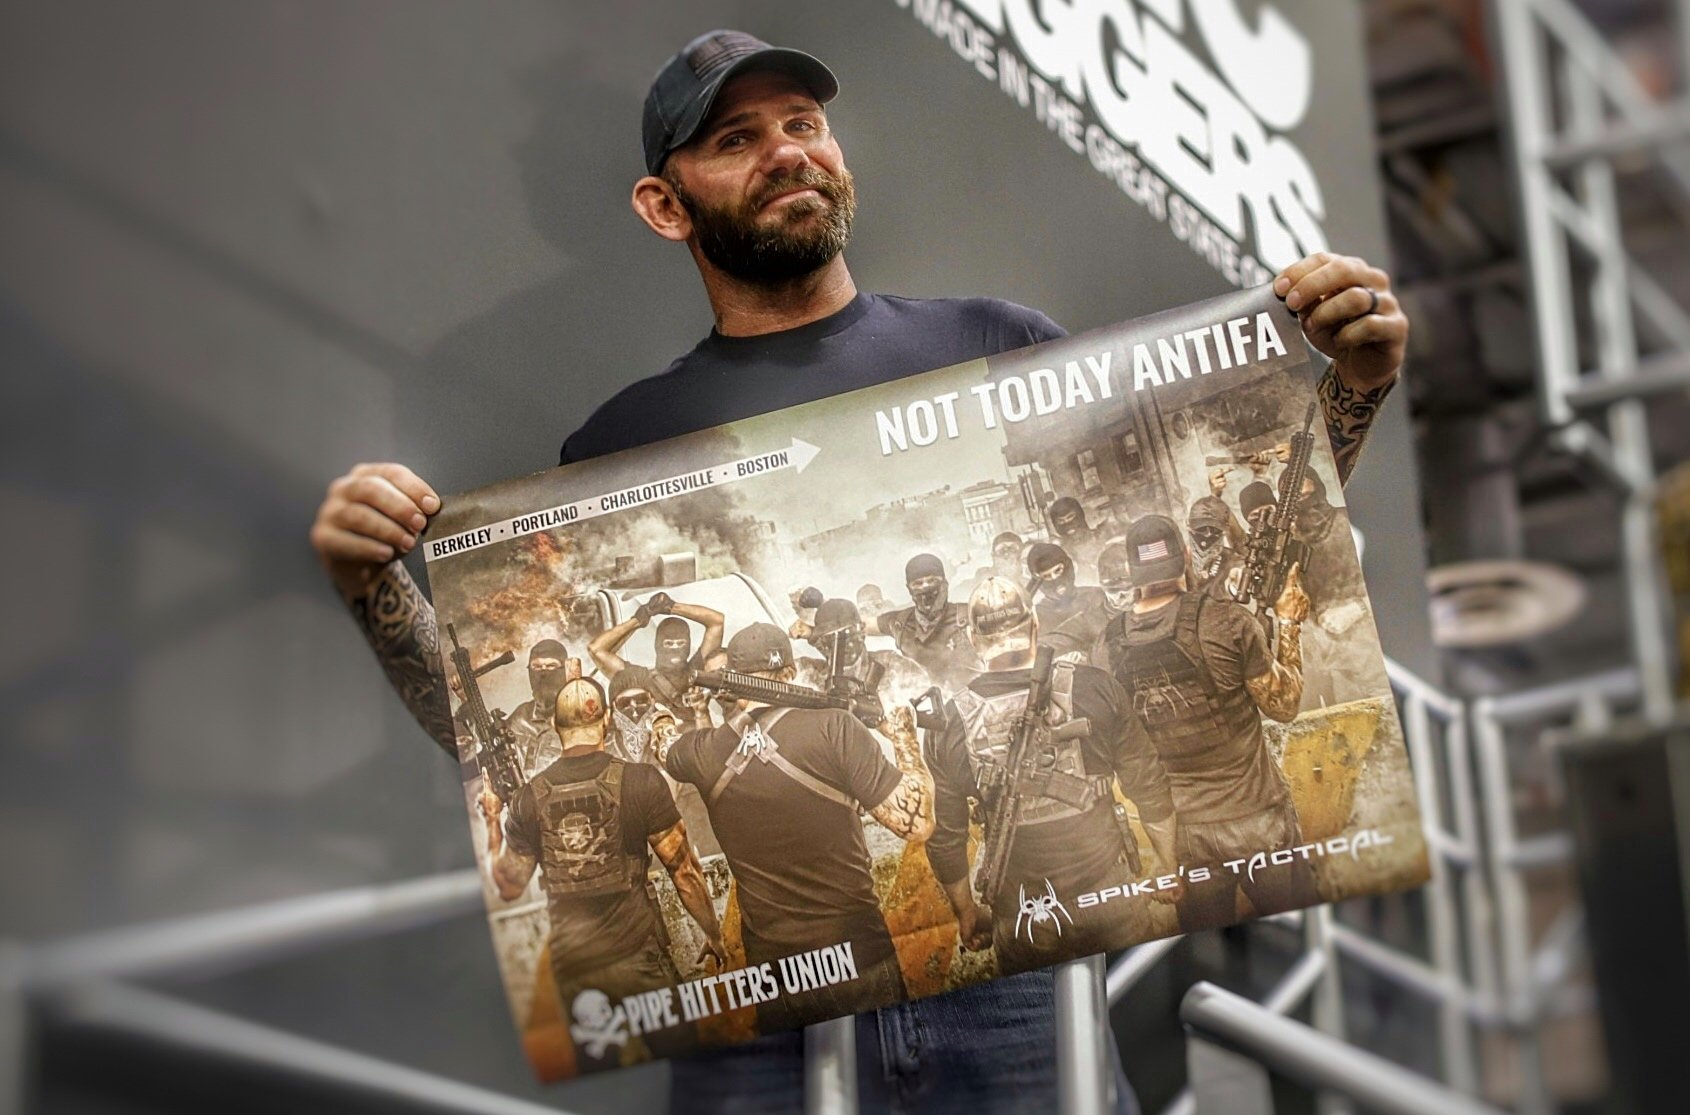 Spike's Tactical kicks off 2018 with new marketing director, due to demand, releases poster of NOT TODAY ANTIFA ad